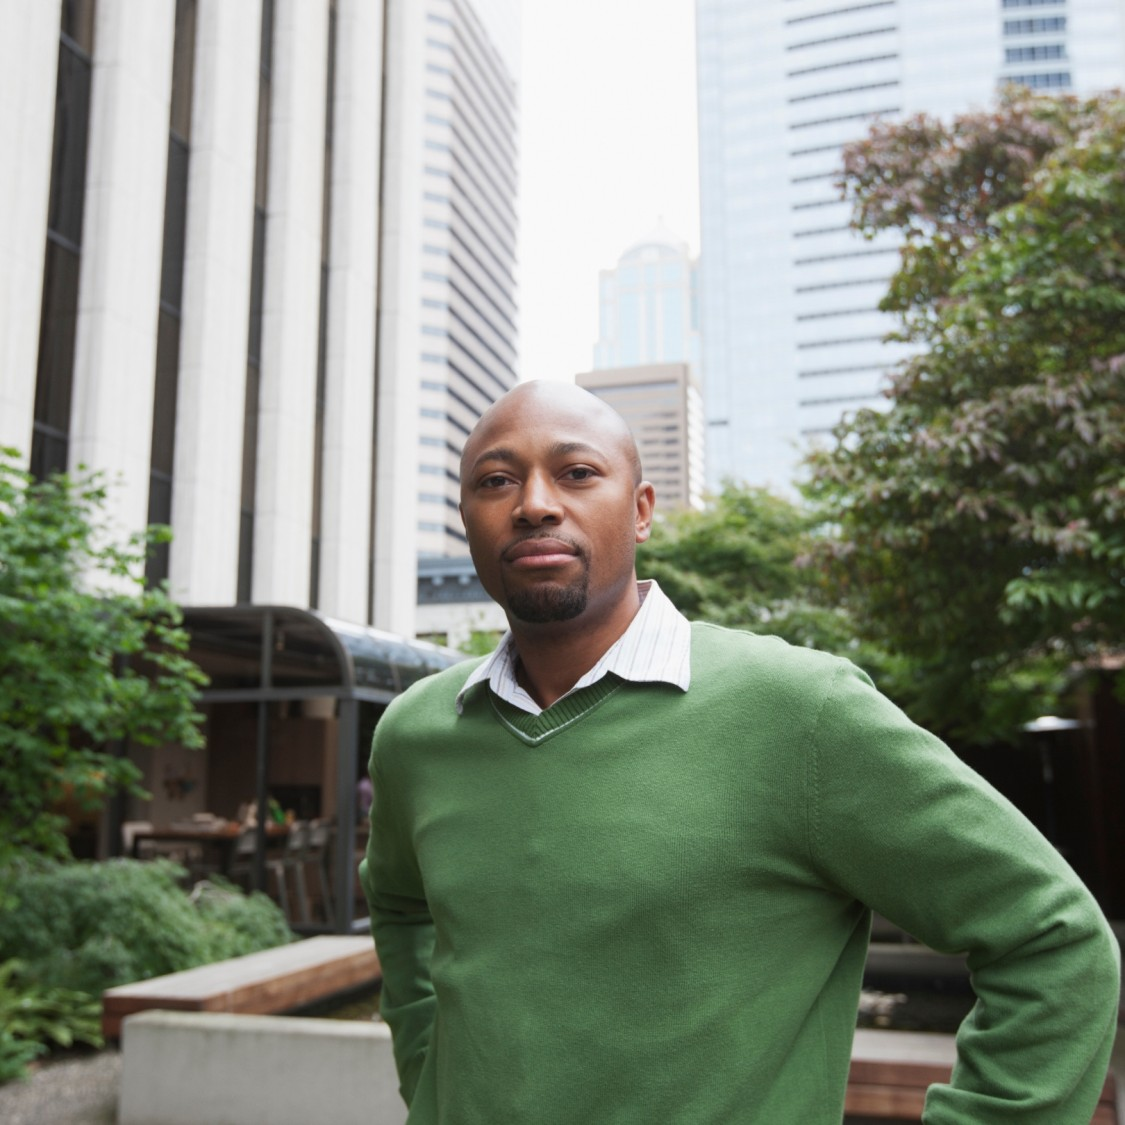 African American business man standing in front of office buildings